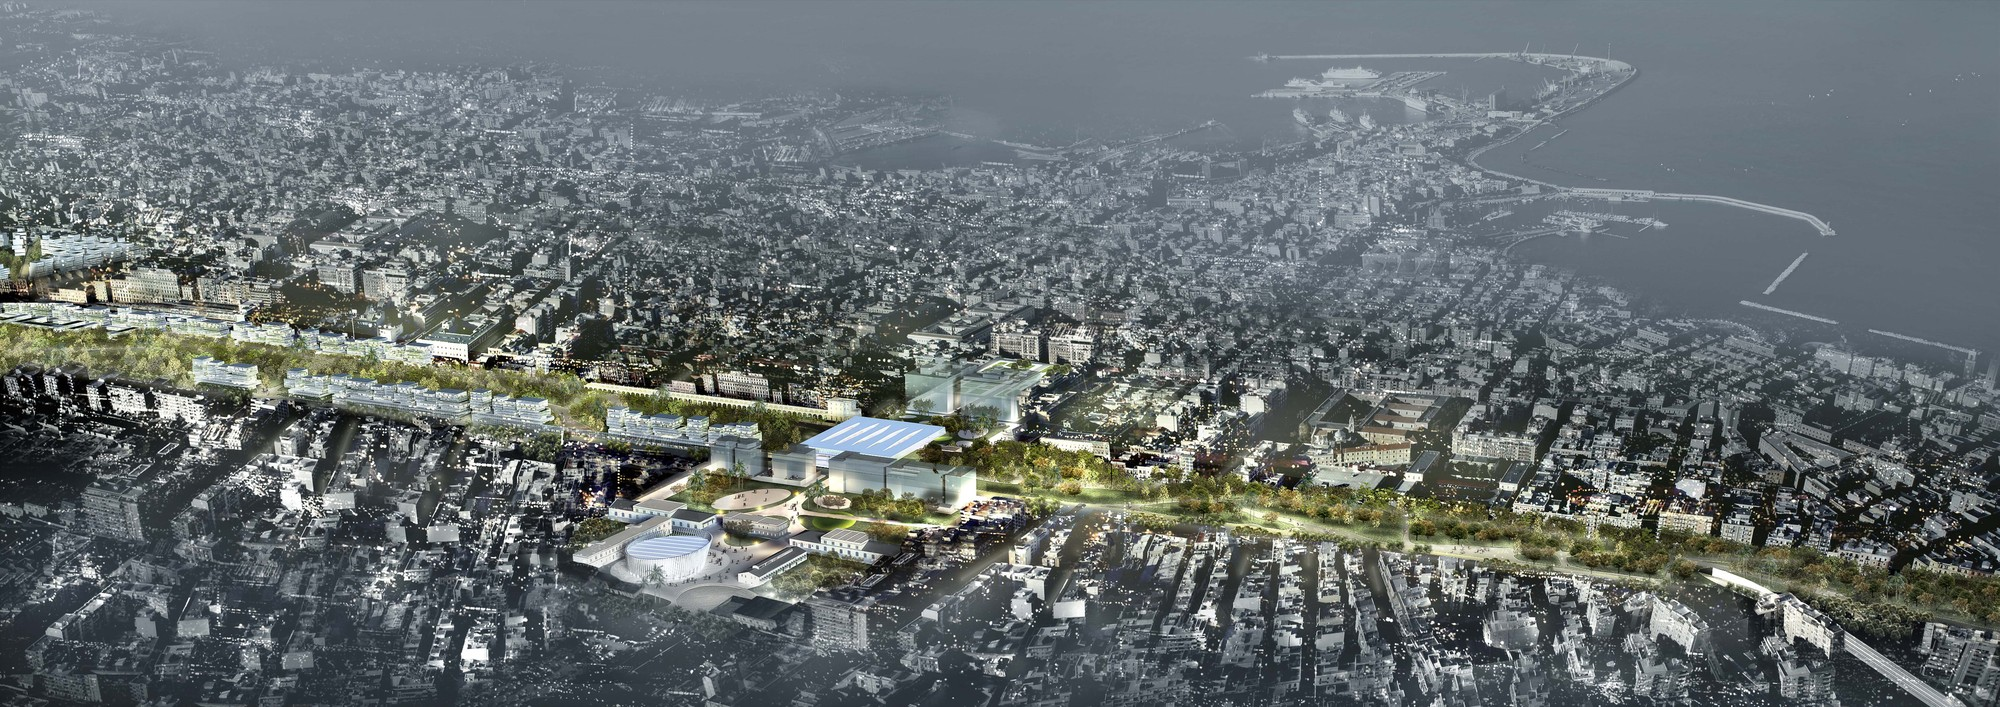 Massimiliano and Doriana Fuksas Wins Competition To Create 'Greenest City in Italy', © Studio Fuksas